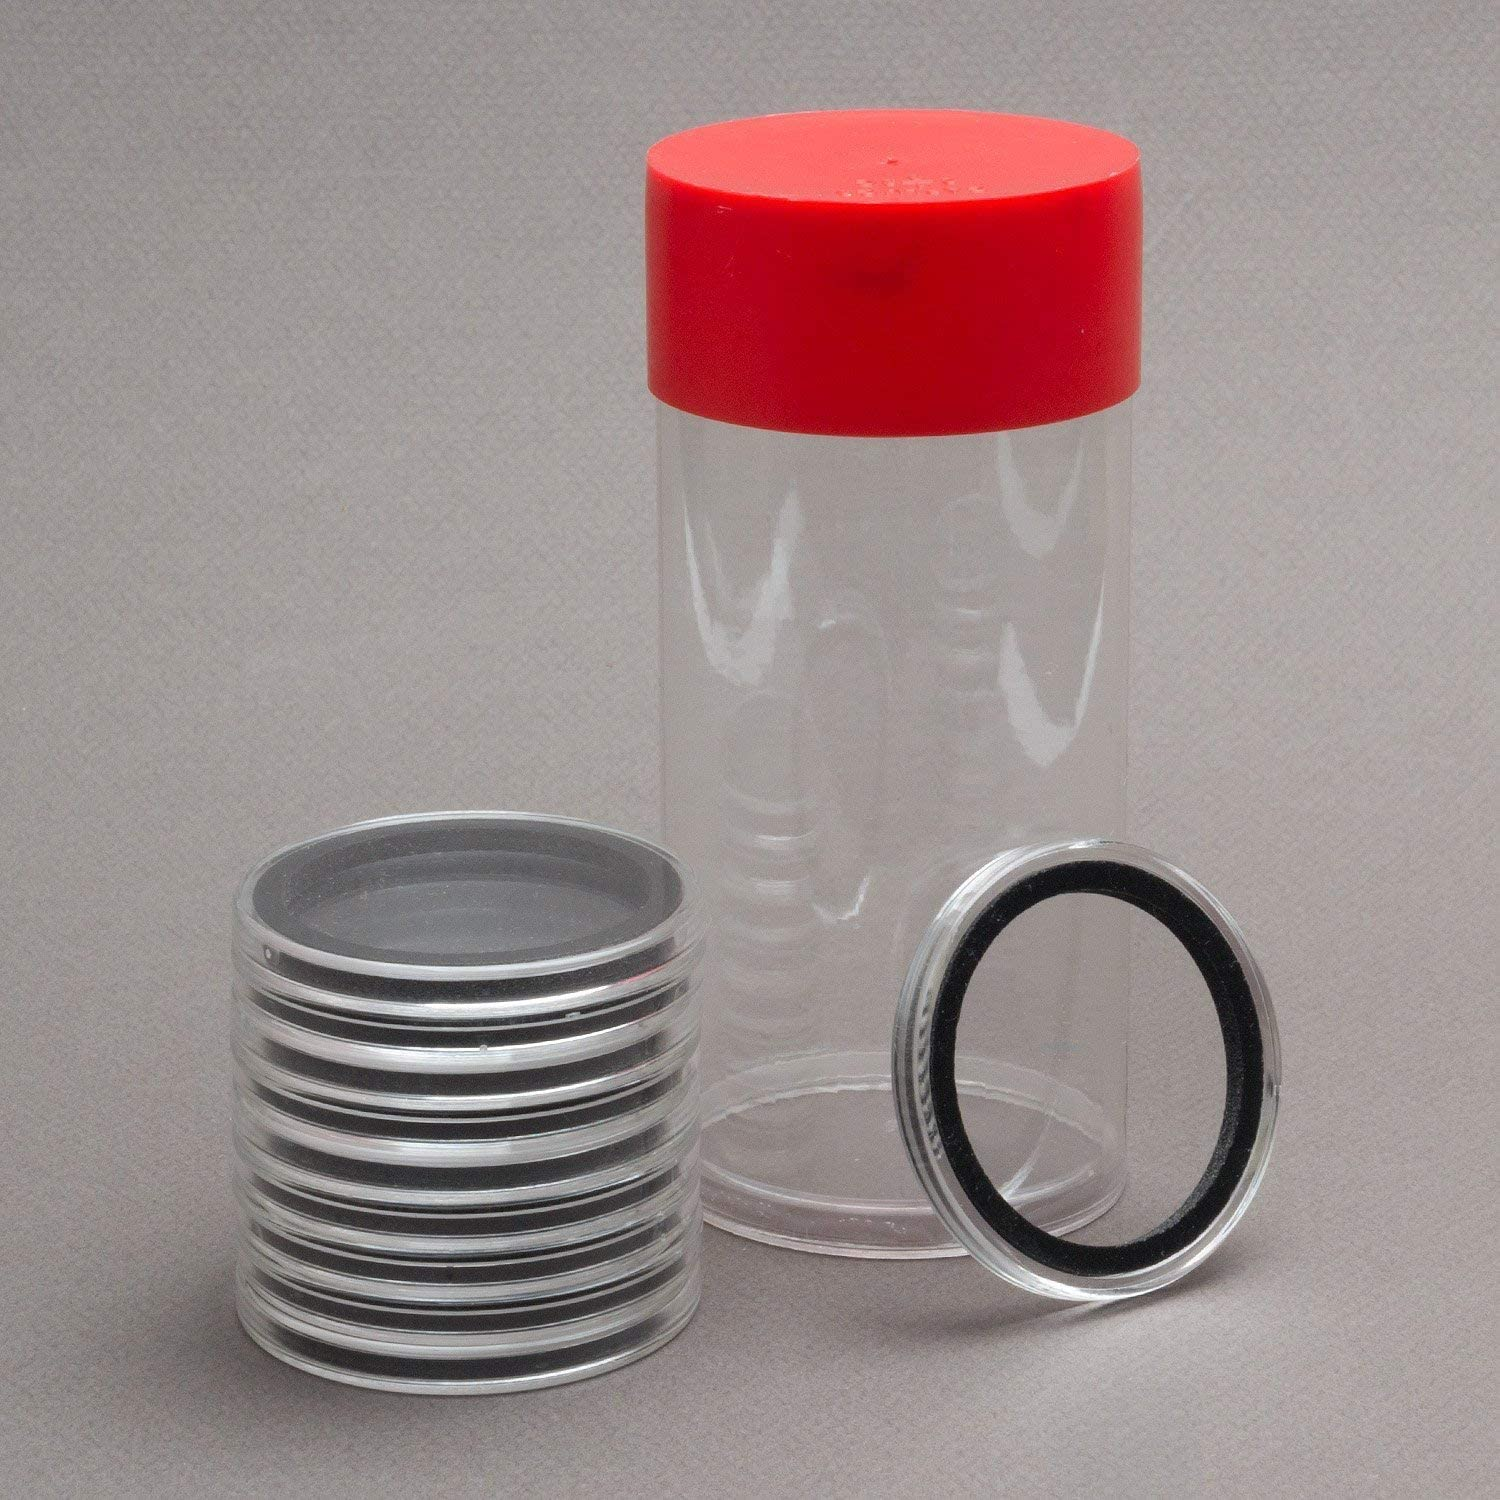 10 Air-tite 32mm White Ring Coin Holder Capsules for 1oz American Gold Eagles and 1oz Gold Krugerrands /& Kangaroos by Air-Tite